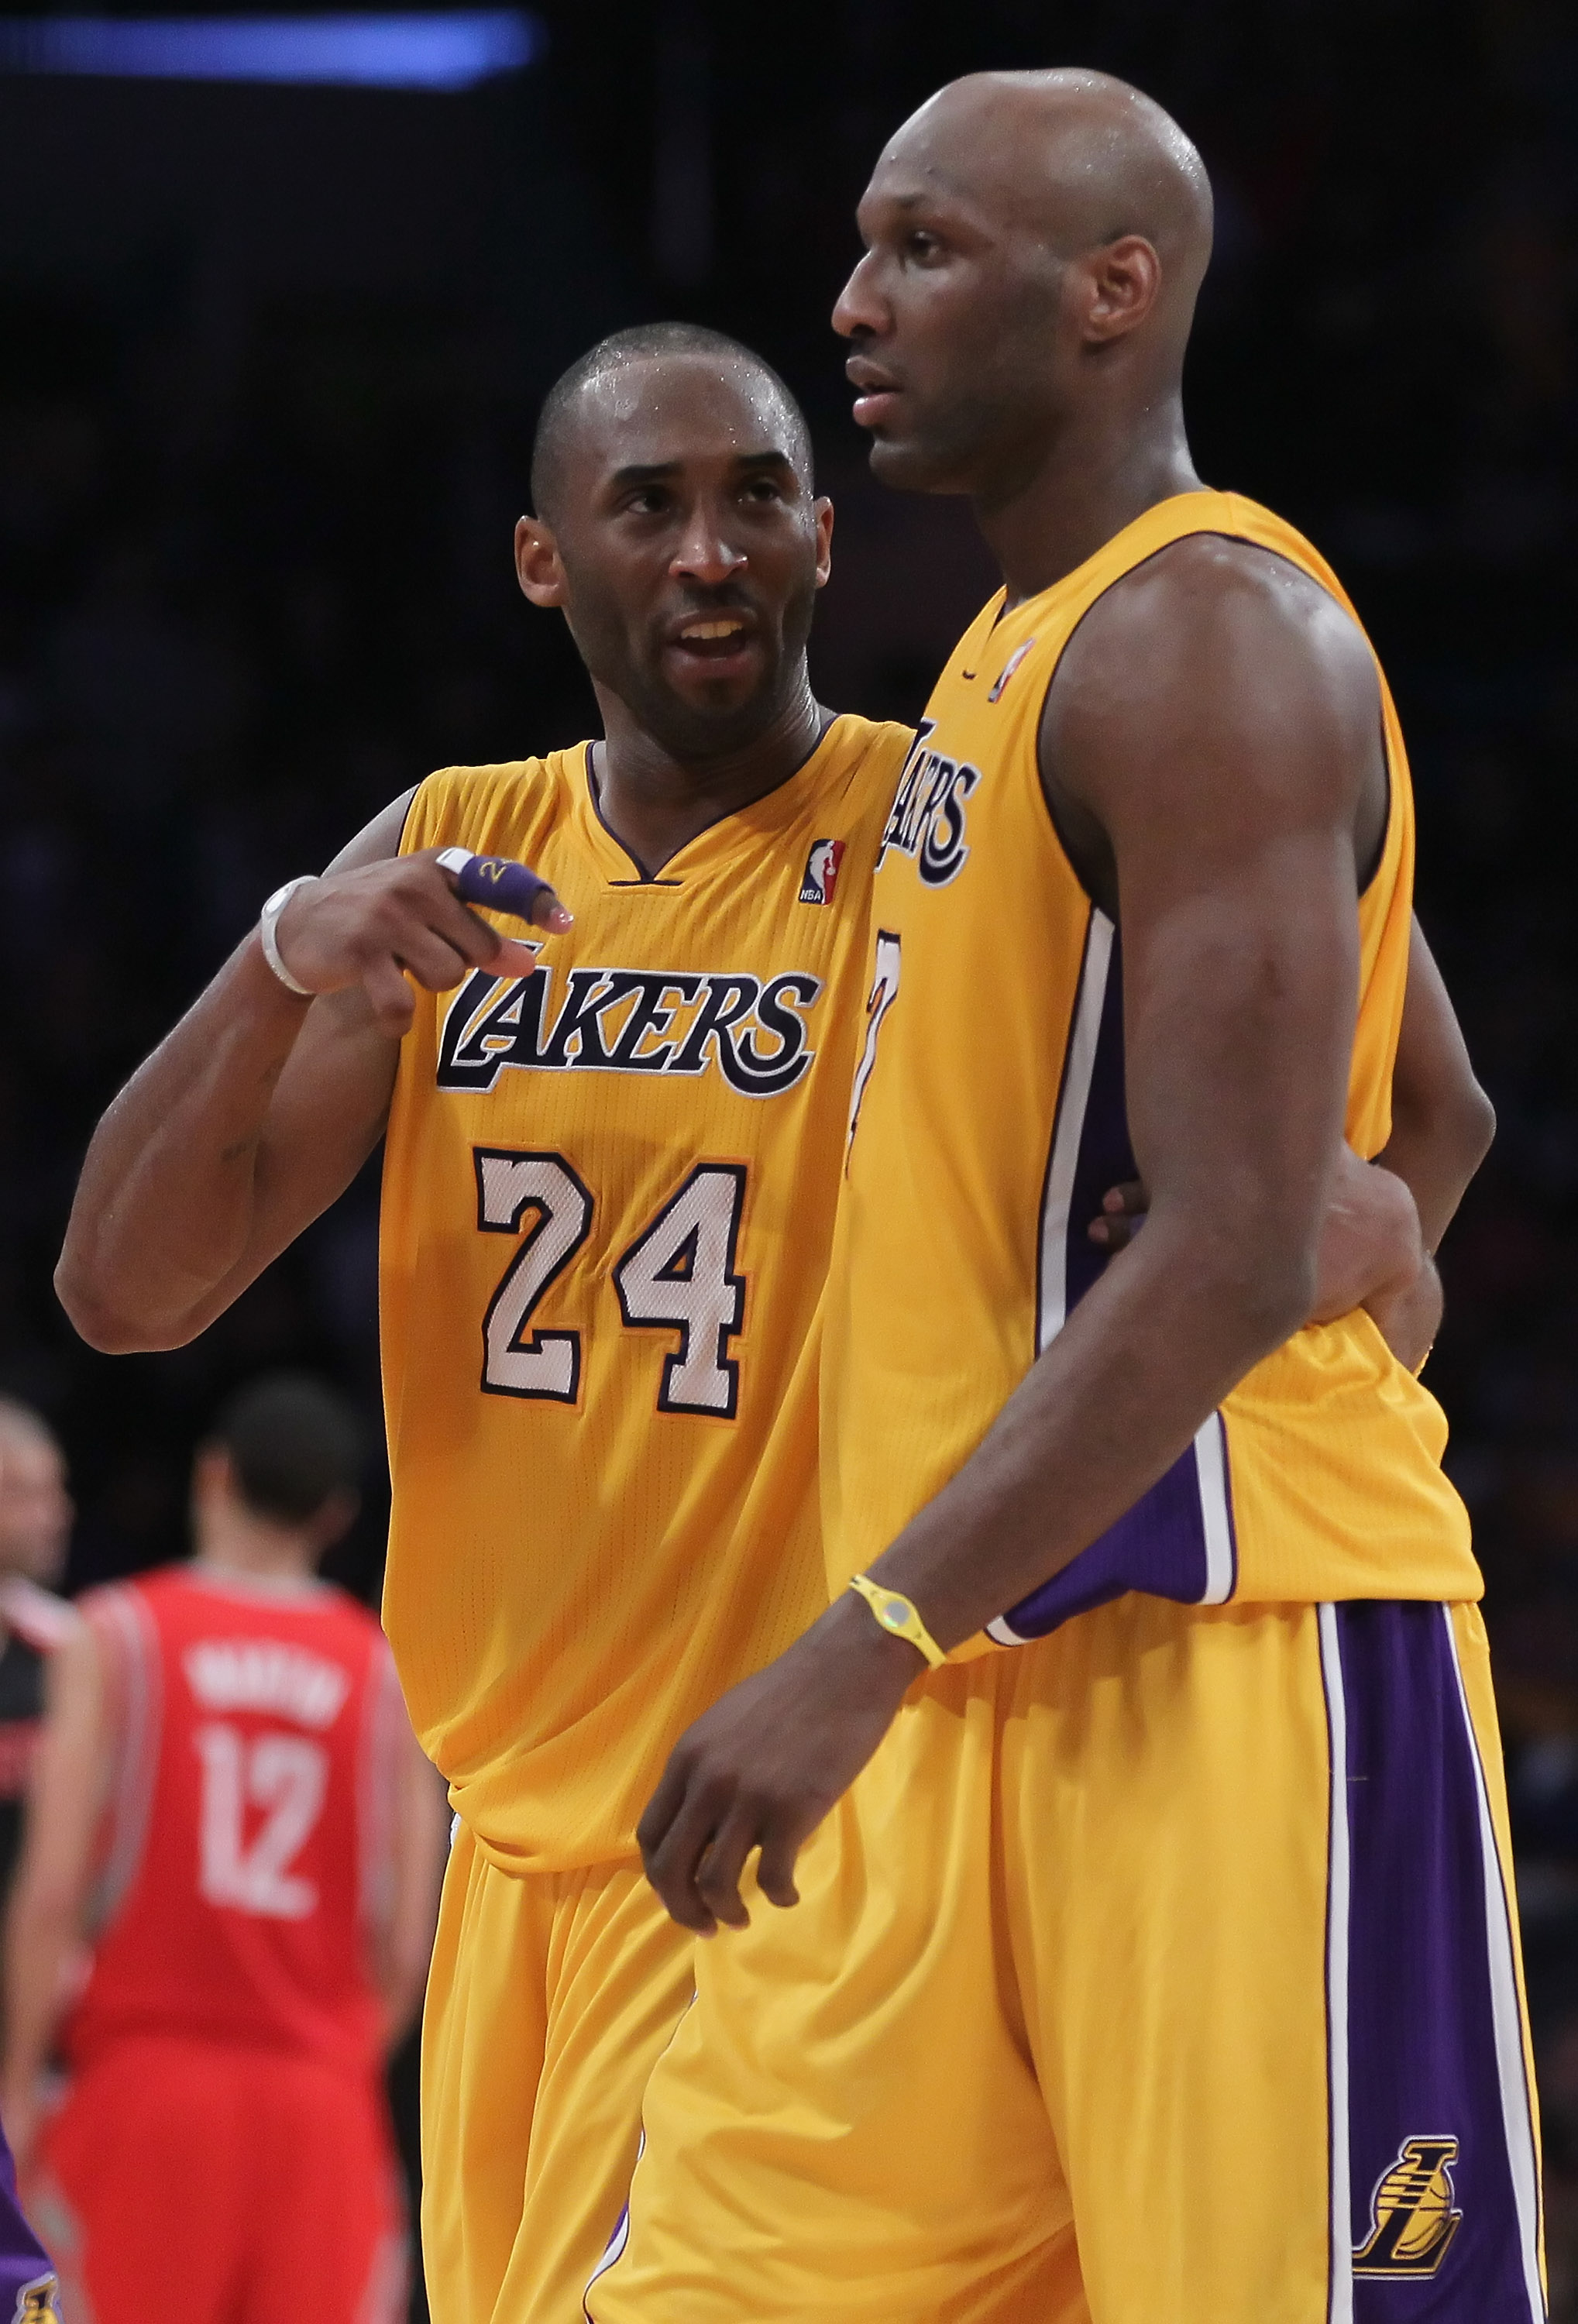 LOS ANGELES, CA - FEBRUARY 01:  Kobe Bryant #24 talks with Lamar Odom #7 of the Los Angeles Lakers against the Houston Rockets in the second half at Staples Center on February 1, 2011 in Los Angeles, California. The Lakers defeated the Rockets 114-106. NO